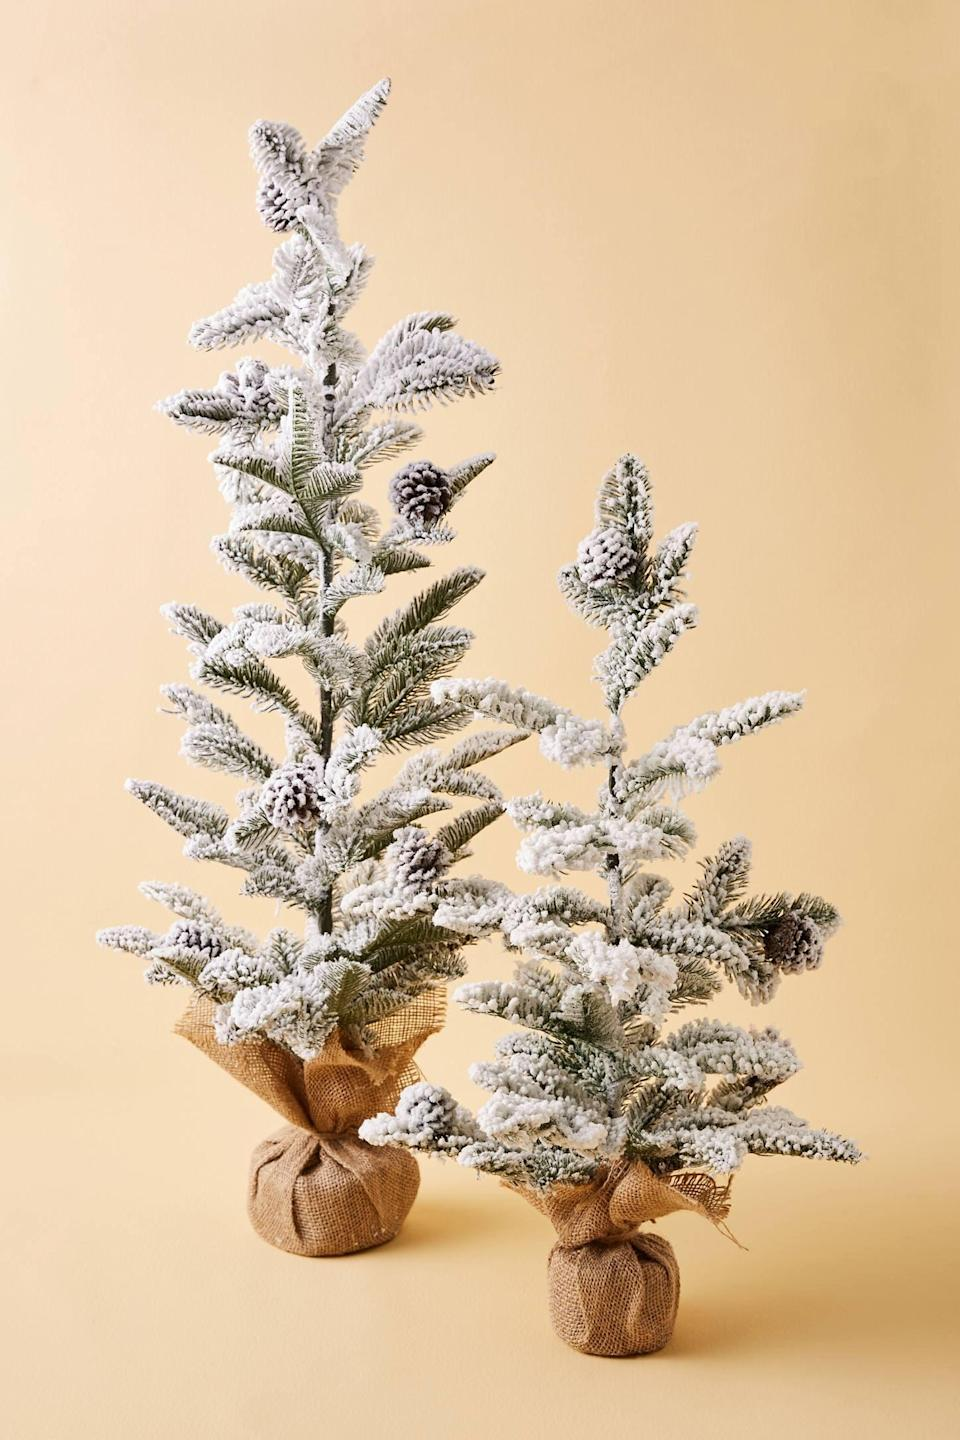 """<p>Turn your home into a Winter wonderland with the <a href=""""https://www.popsugar.com/buy/Flocked-Christmas-Tree-490436?p_name=Flocked%20Christmas%20Tree&retailer=anthropologie.com&pid=490436&price=38&evar1=casa%3Aus&evar9=46615300&evar98=https%3A%2F%2Fwww.popsugar.com%2Fhome%2Fphoto-gallery%2F46615300%2Fimage%2F46615305%2FFlocked-Christmas-Tree&list1=shopping%2Canthropologie%2Choliday%2Cchristmas%2Cchristmas%20decorations%2Choliday%20decor%2Chome%20shopping&prop13=mobile&pdata=1"""" rel=""""nofollow noopener"""" class=""""link rapid-noclick-resp"""" target=""""_blank"""" data-ylk=""""slk:Flocked Christmas Tree"""">Flocked Christmas Tree</a> ($38-$58).</p>"""